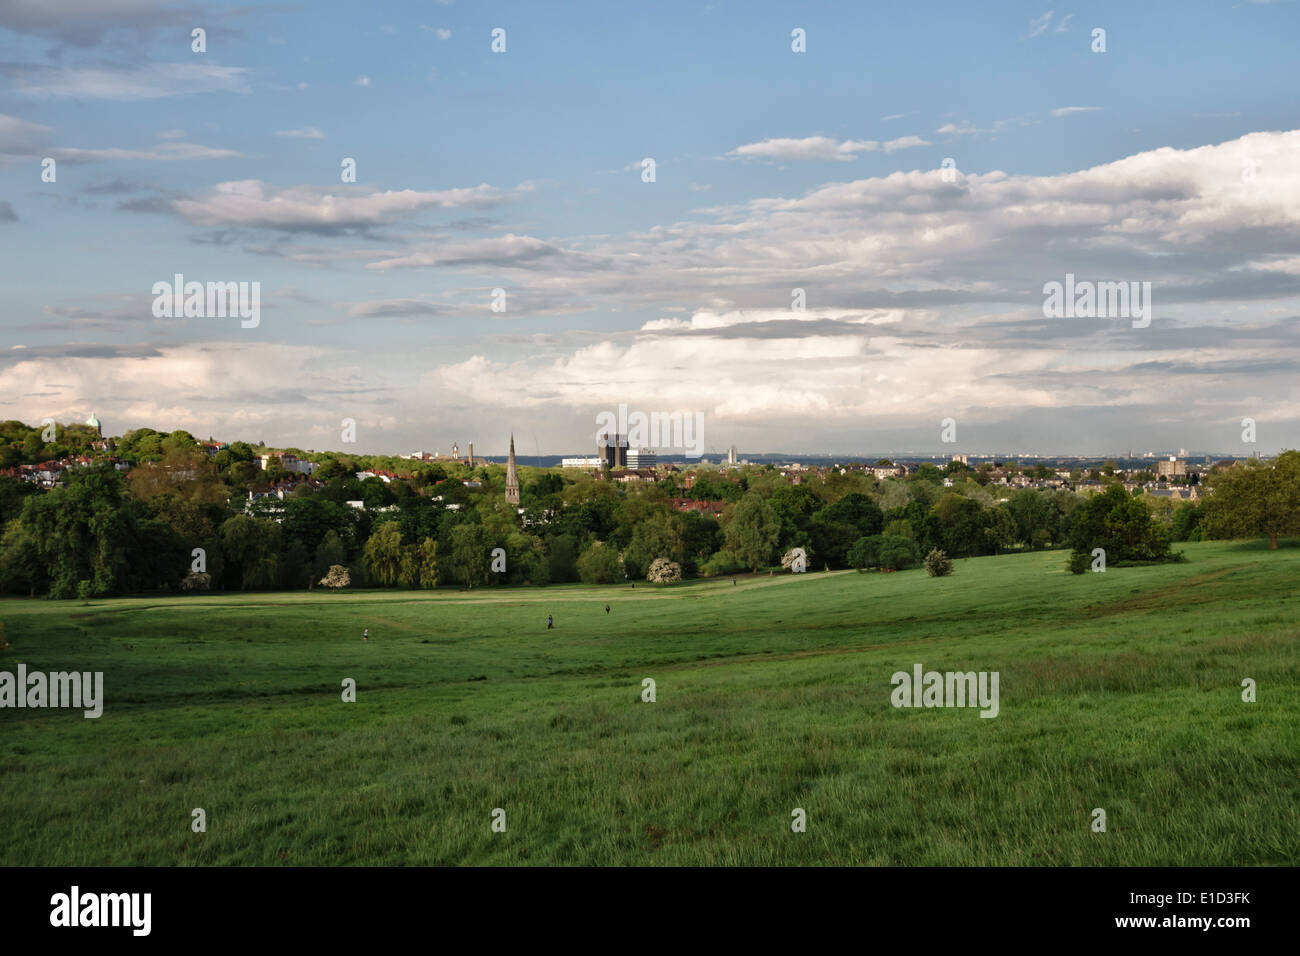 View over Parliament Hill Fields, Hampstead Heath, London, UK - Stock Image